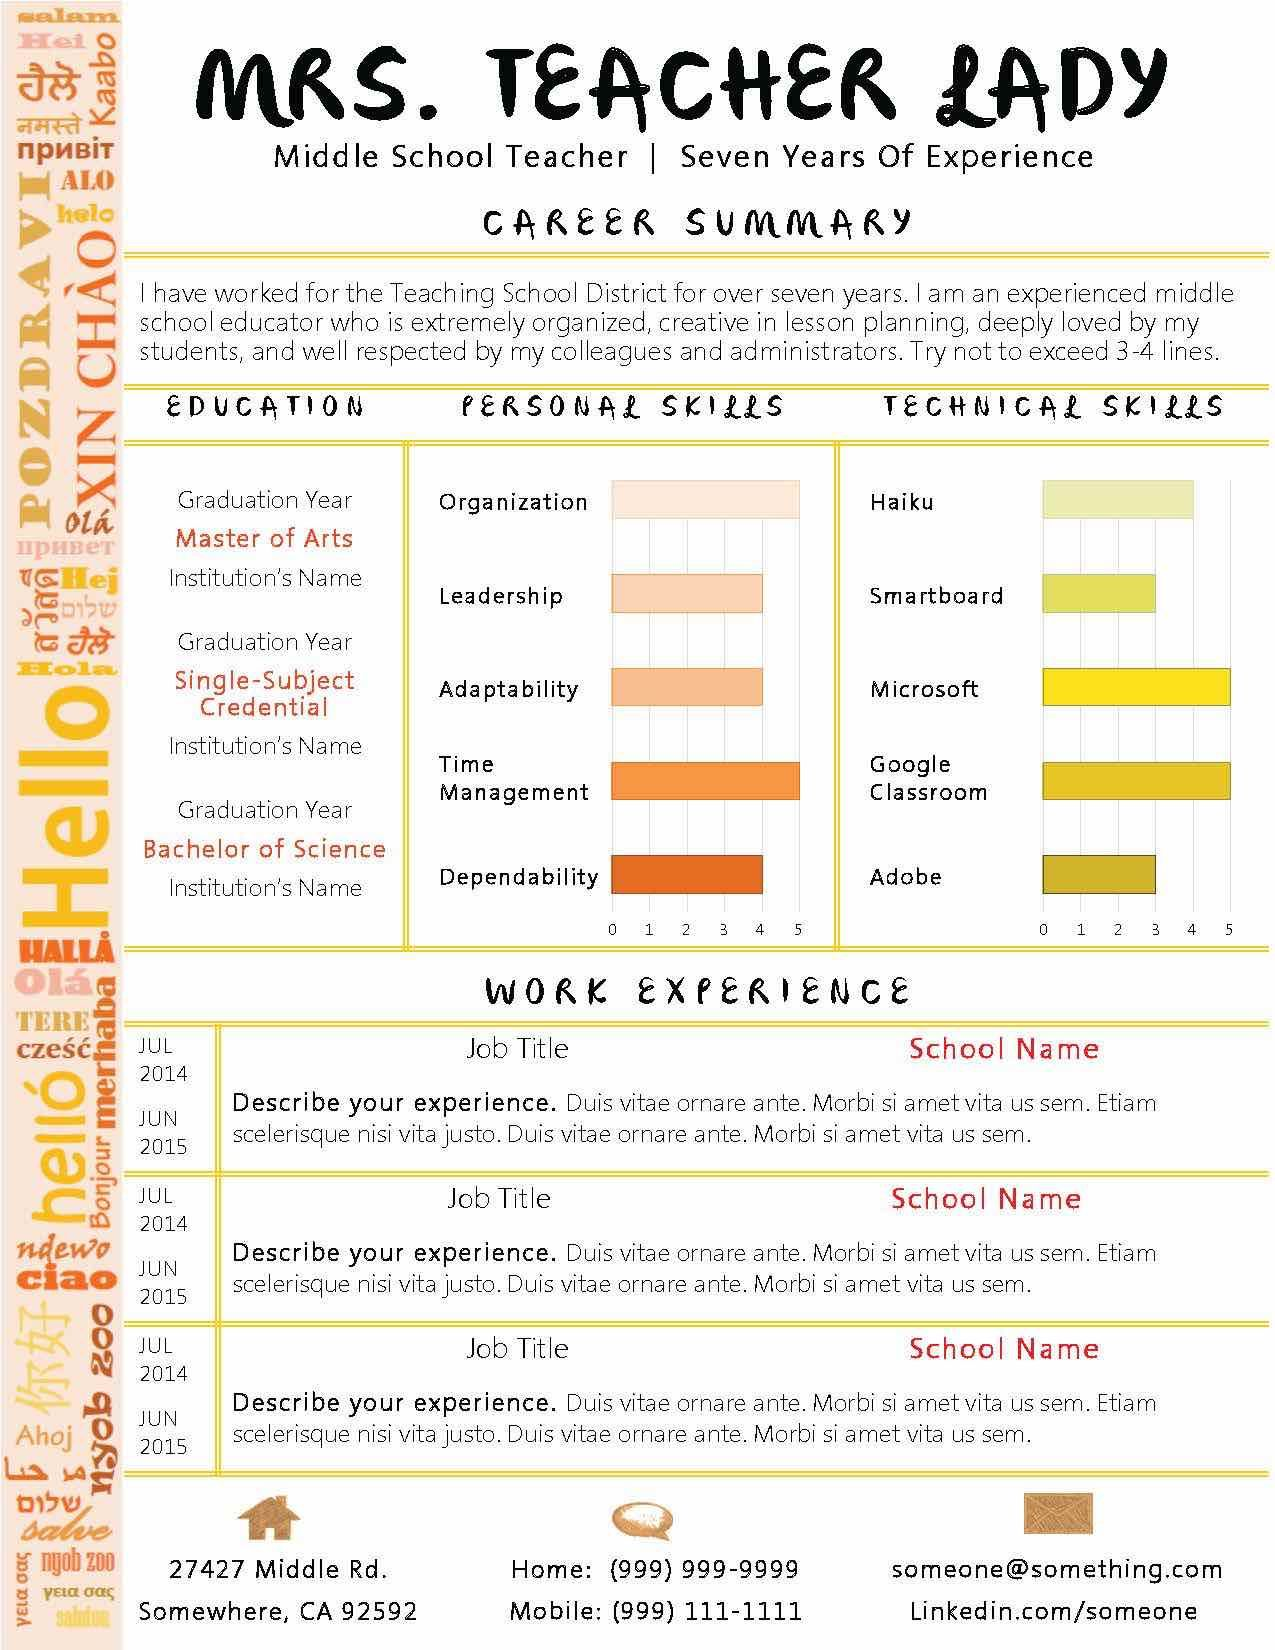 How To Make A Teacher Resume Stand Out Autumn Colors Teacher Resume Make Your Cover Letter And